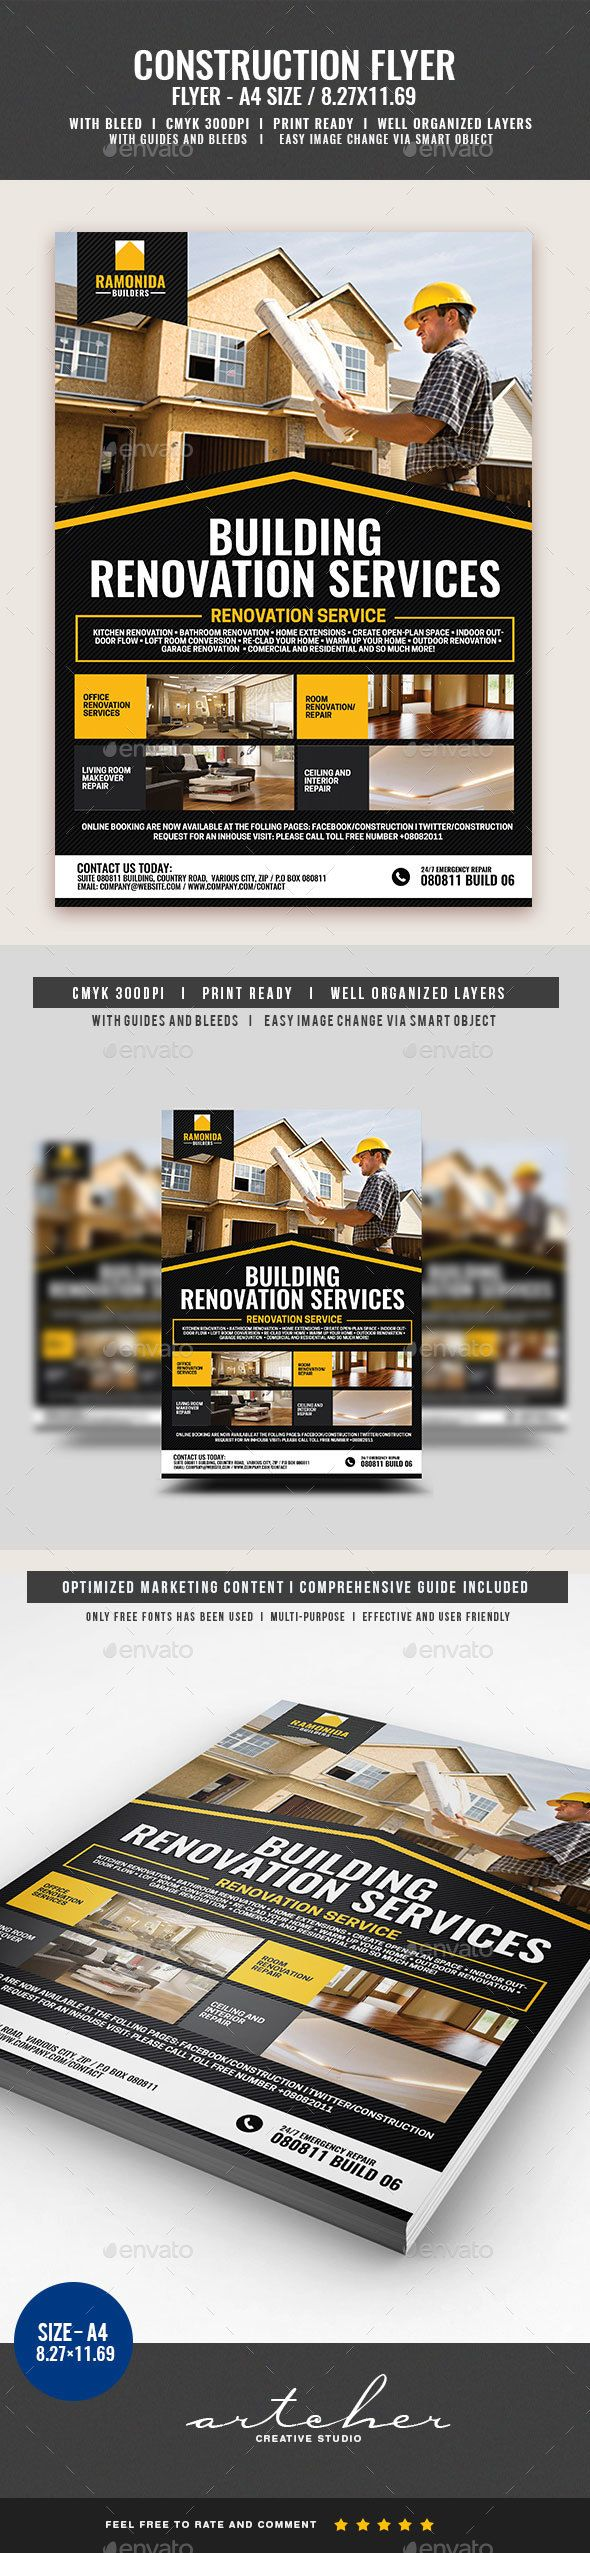 Home Renovation Service Flyer Template PSD